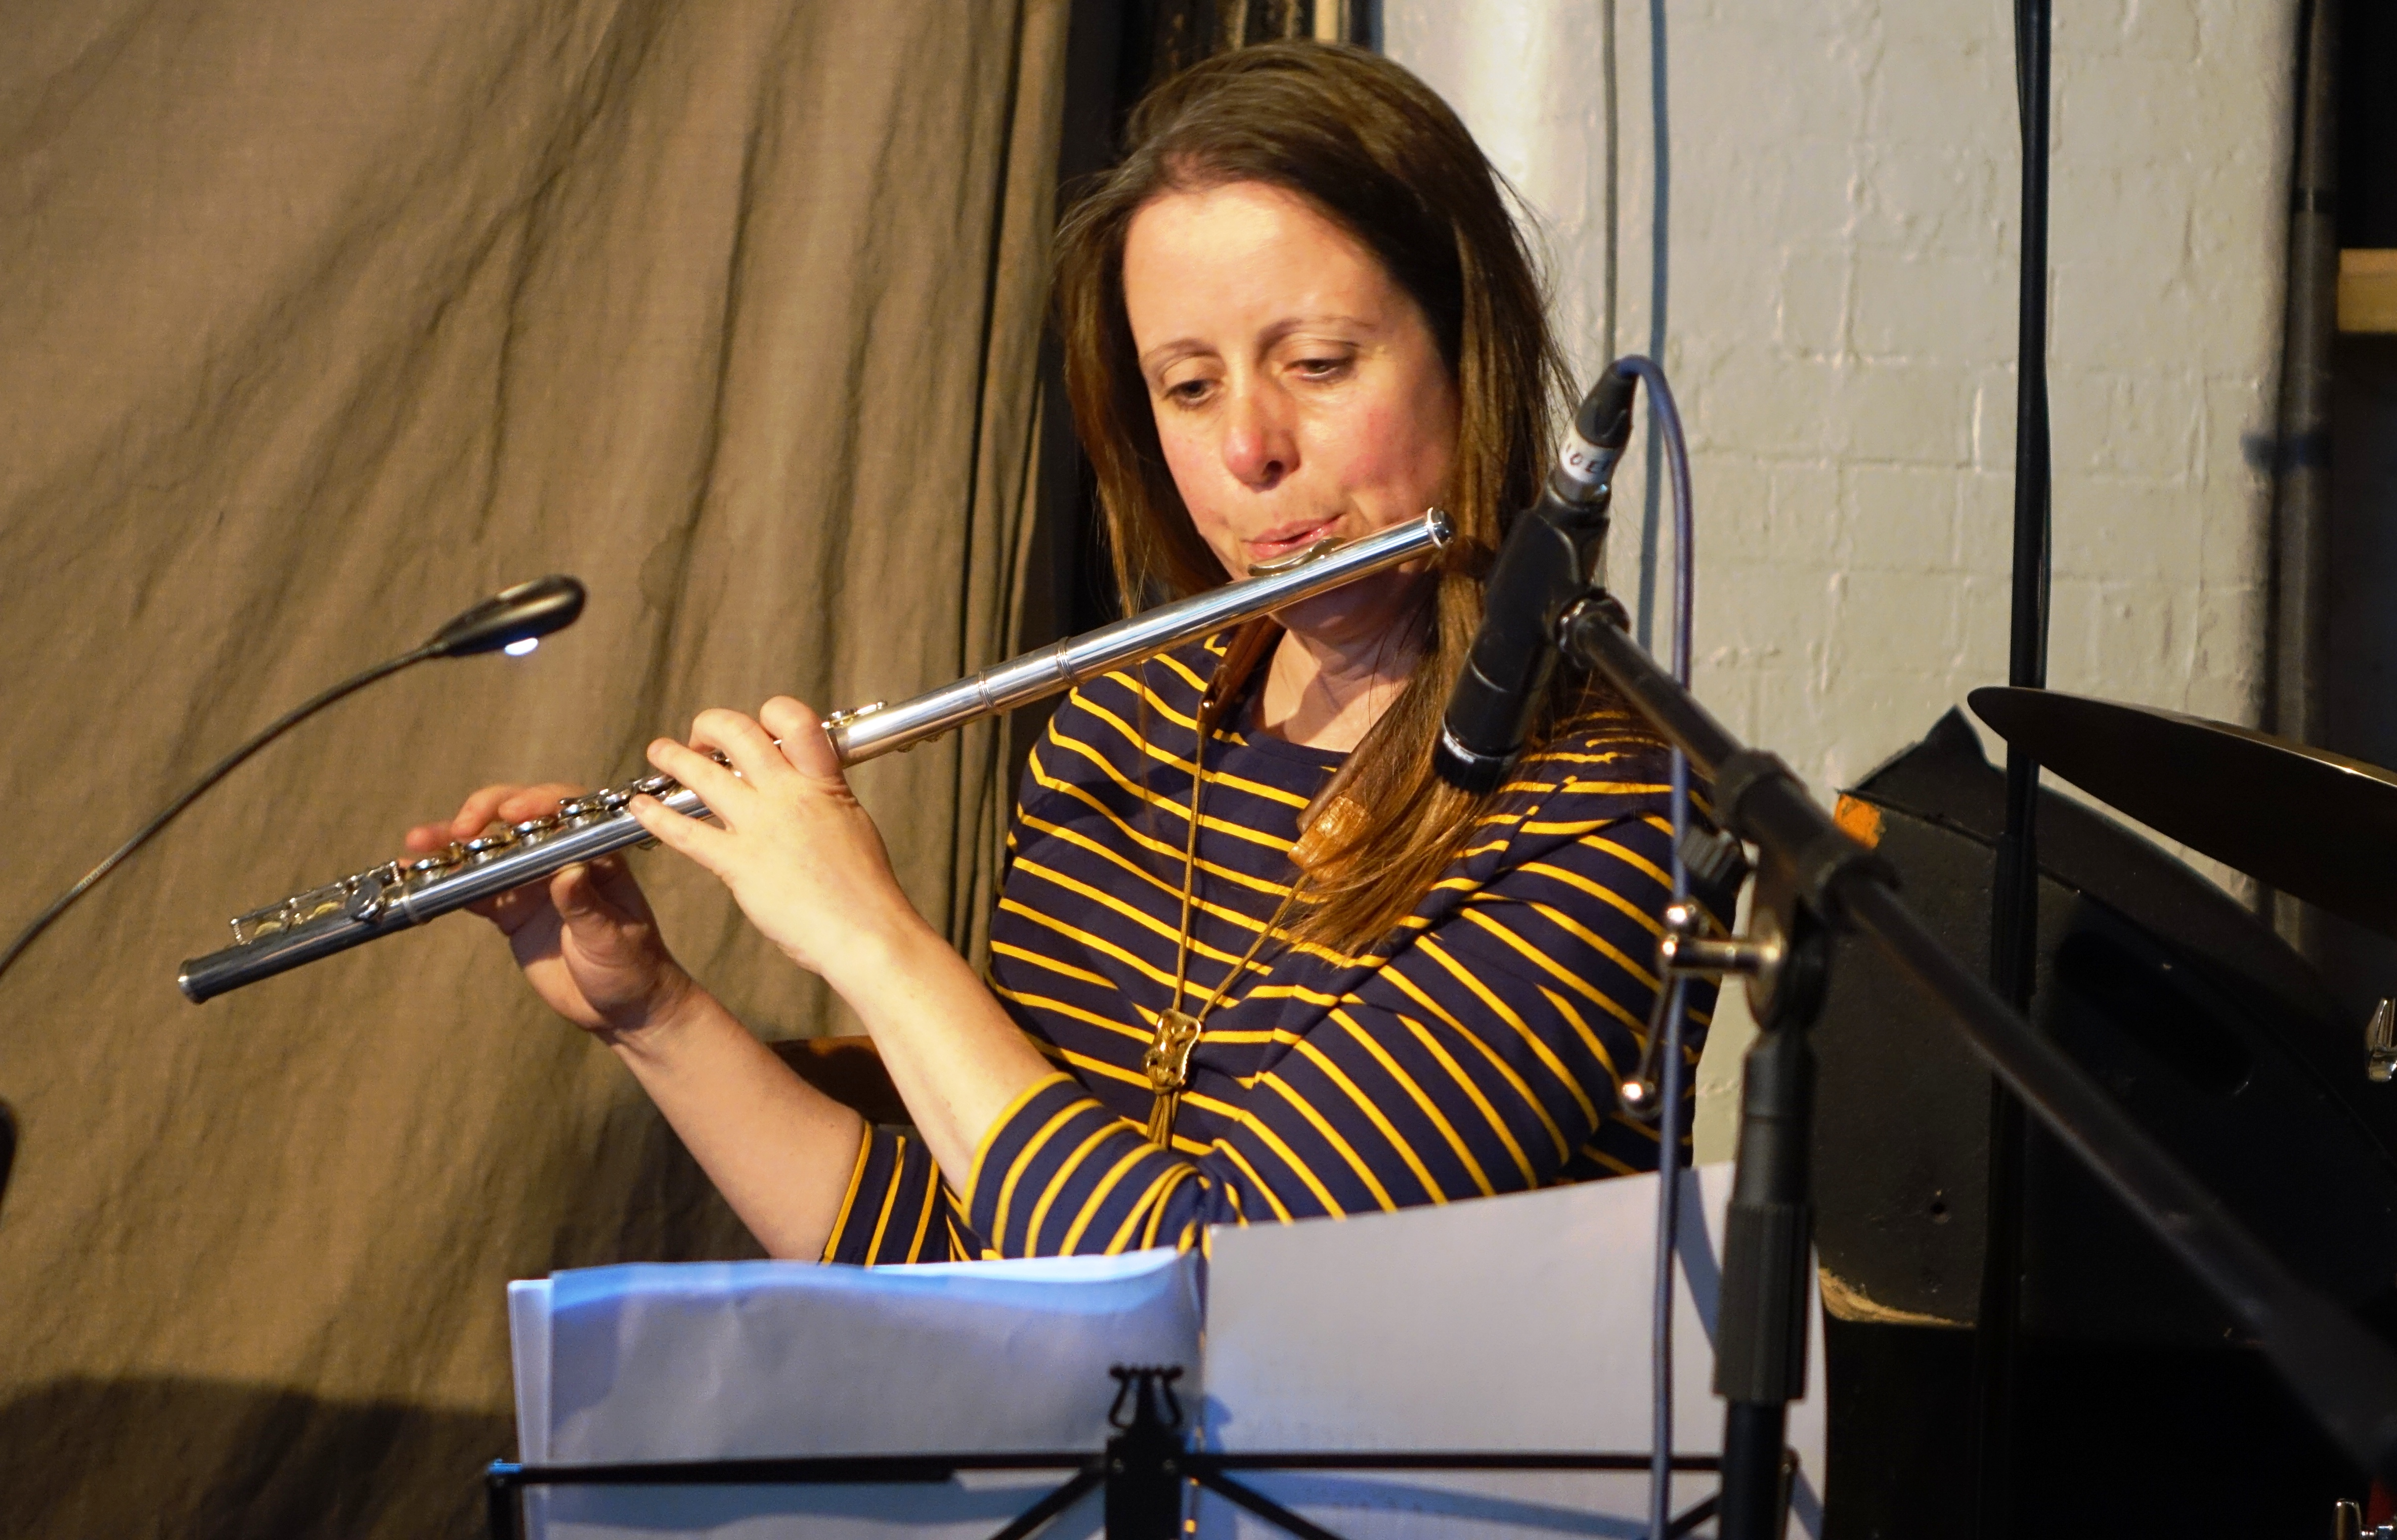 Rachel Musson at Cafe Oto, London in April 2018